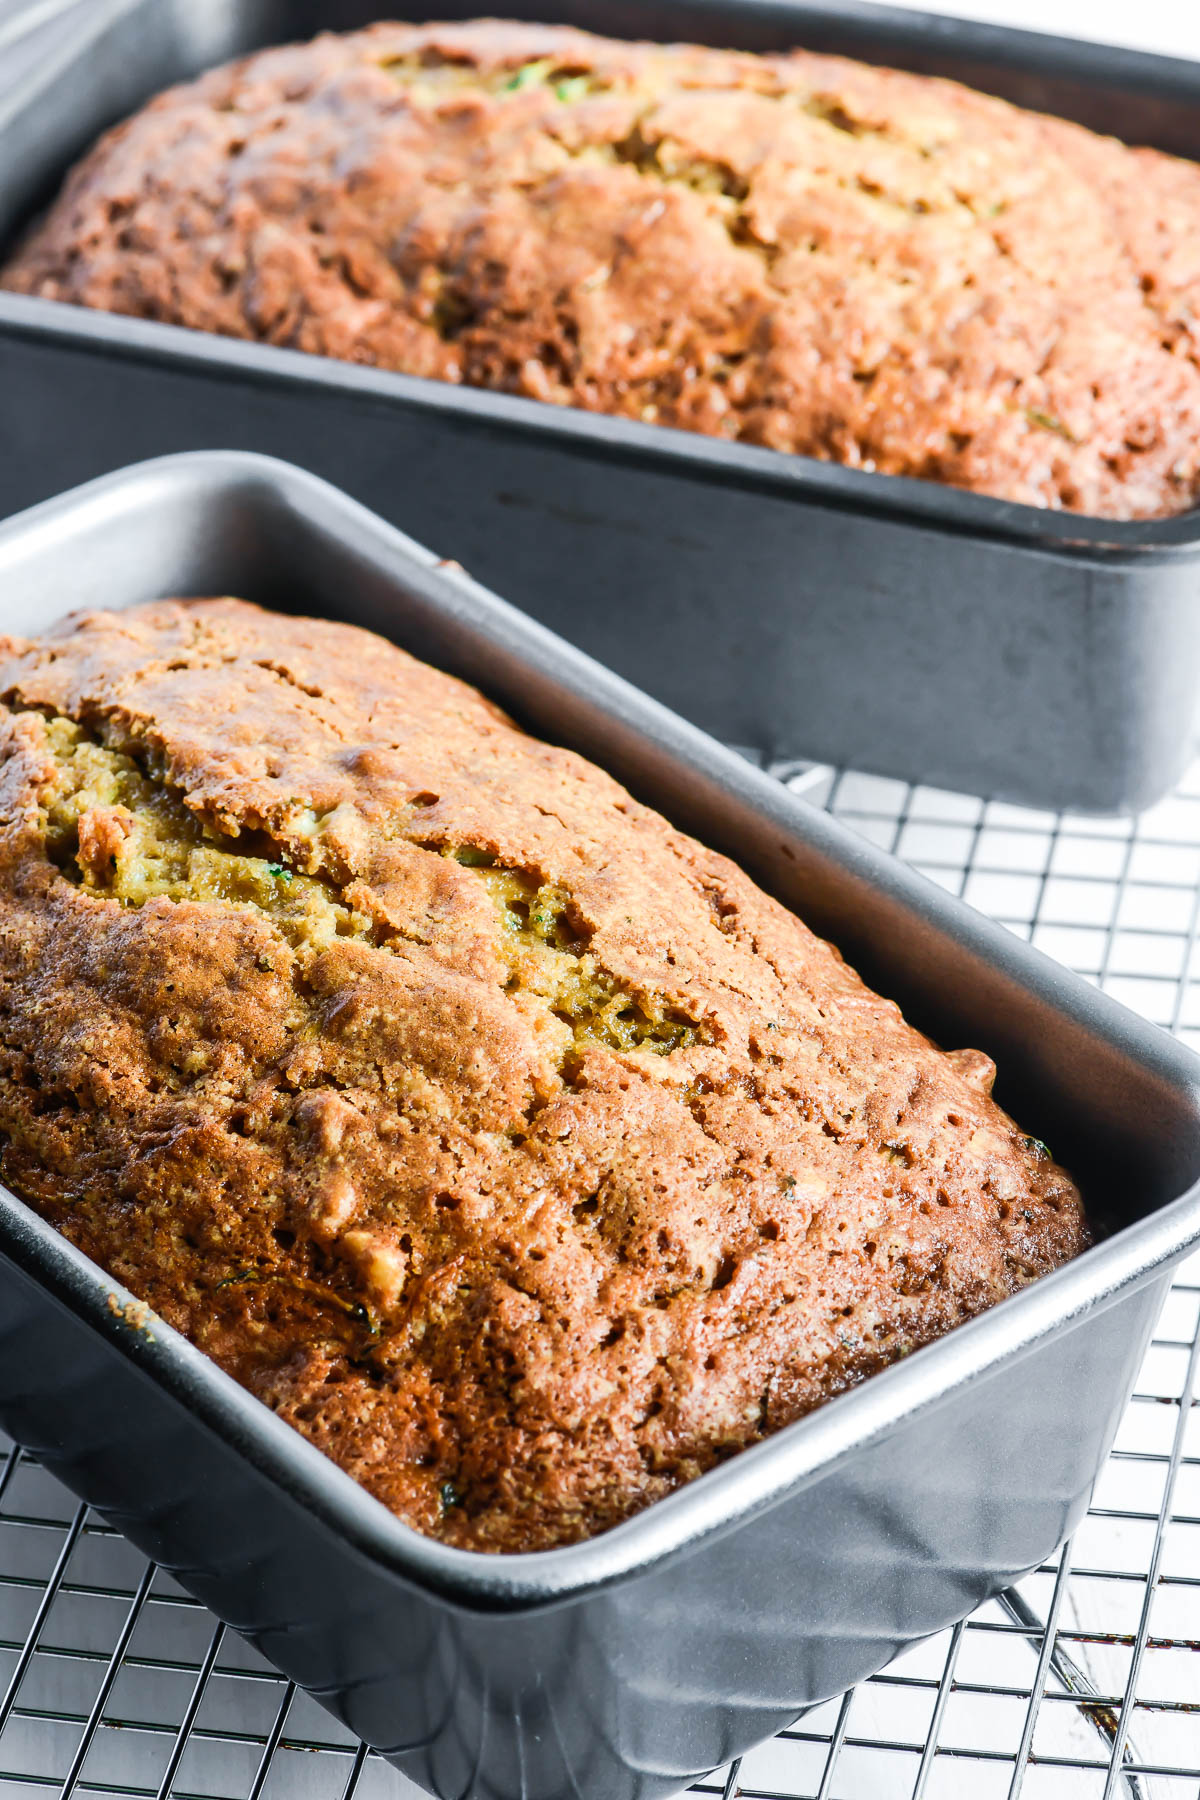 zucchini bread just out of the oven, on a cooling rack